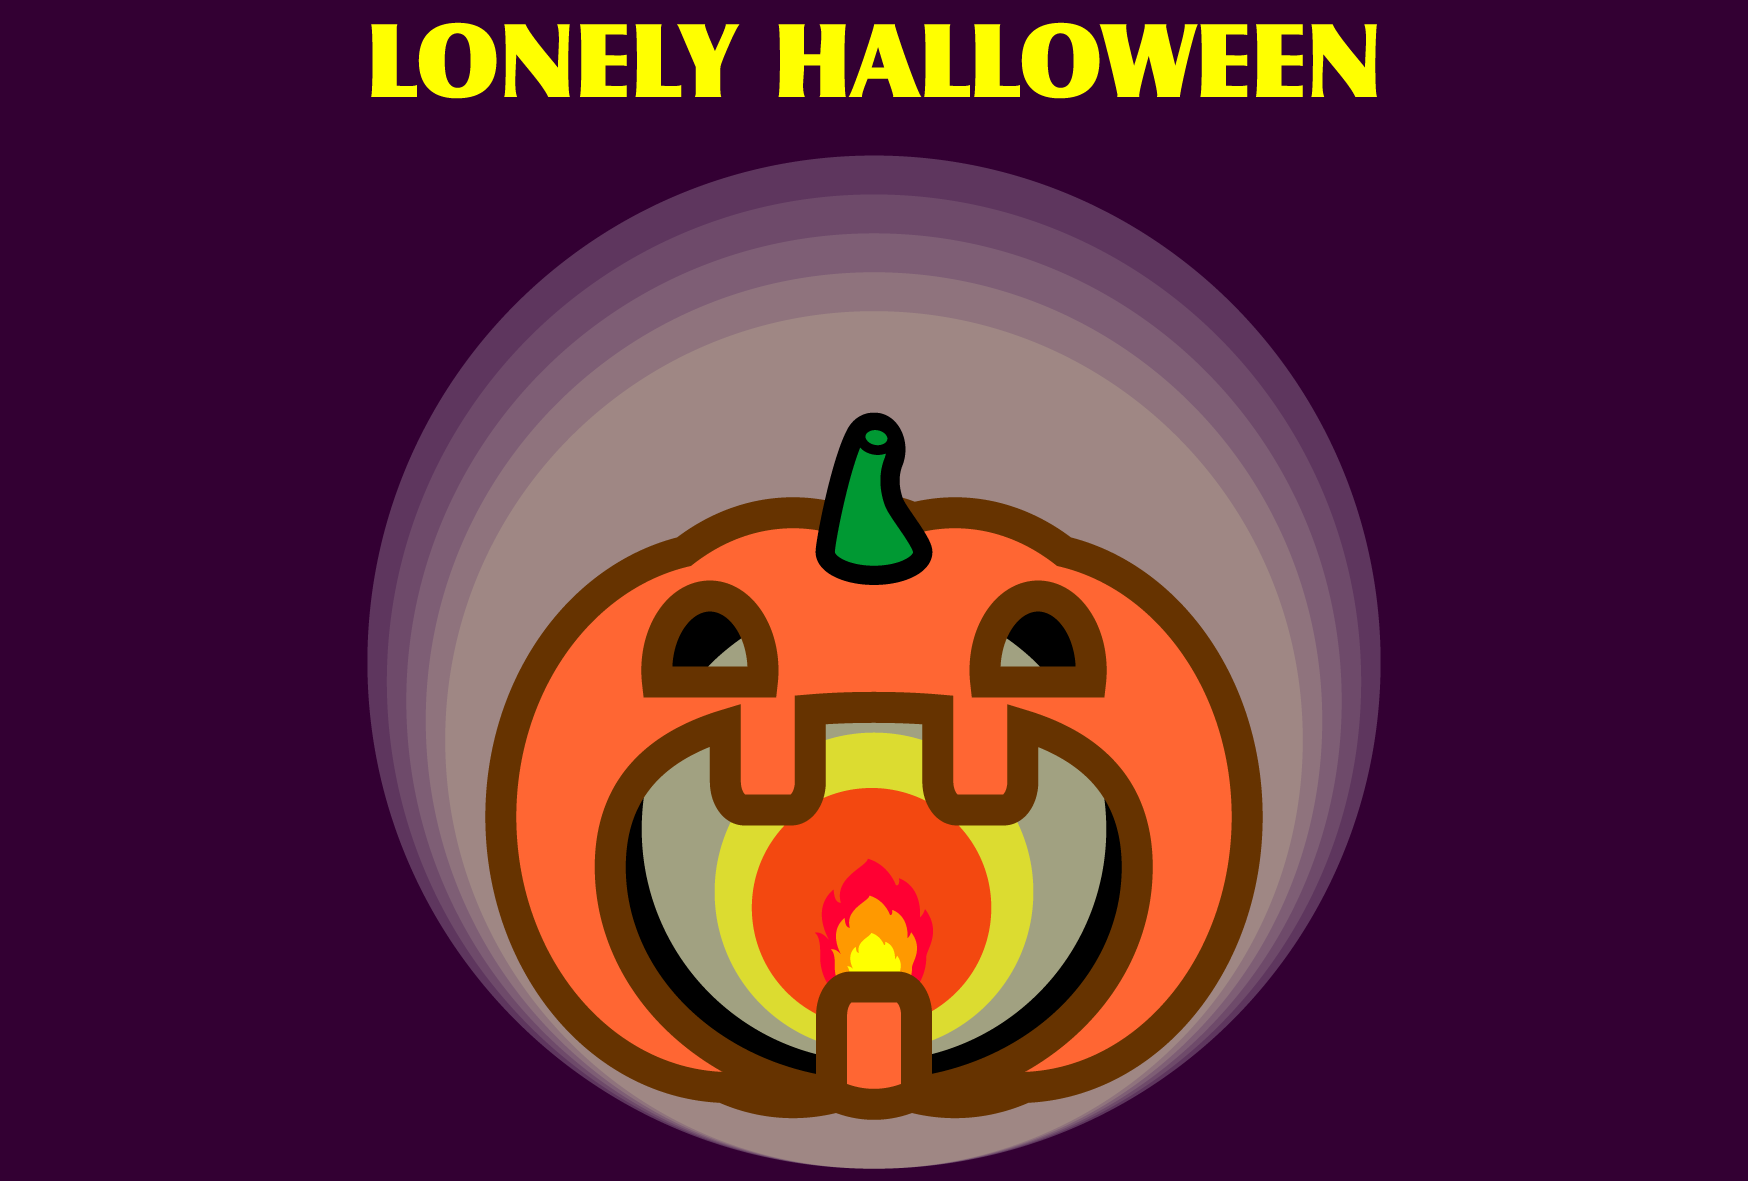 halloween-card(web)_lonely